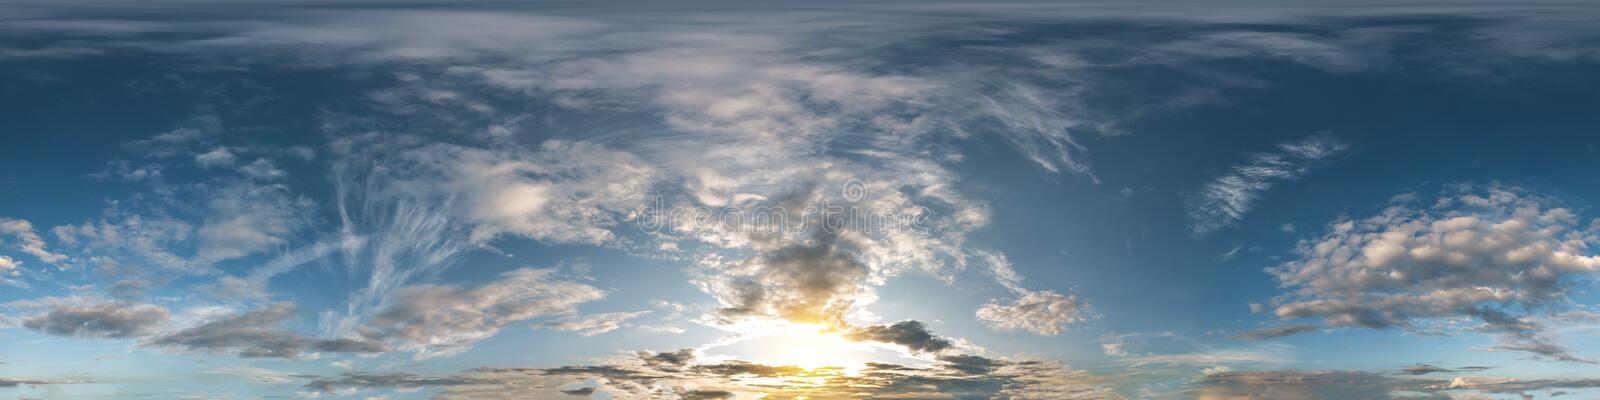 Seamless dark sky before sunset hdri panorama 360 degrees angle view with beautiful clouds for use in 3d graphics or game. Development as sky dome or edit drone stock image